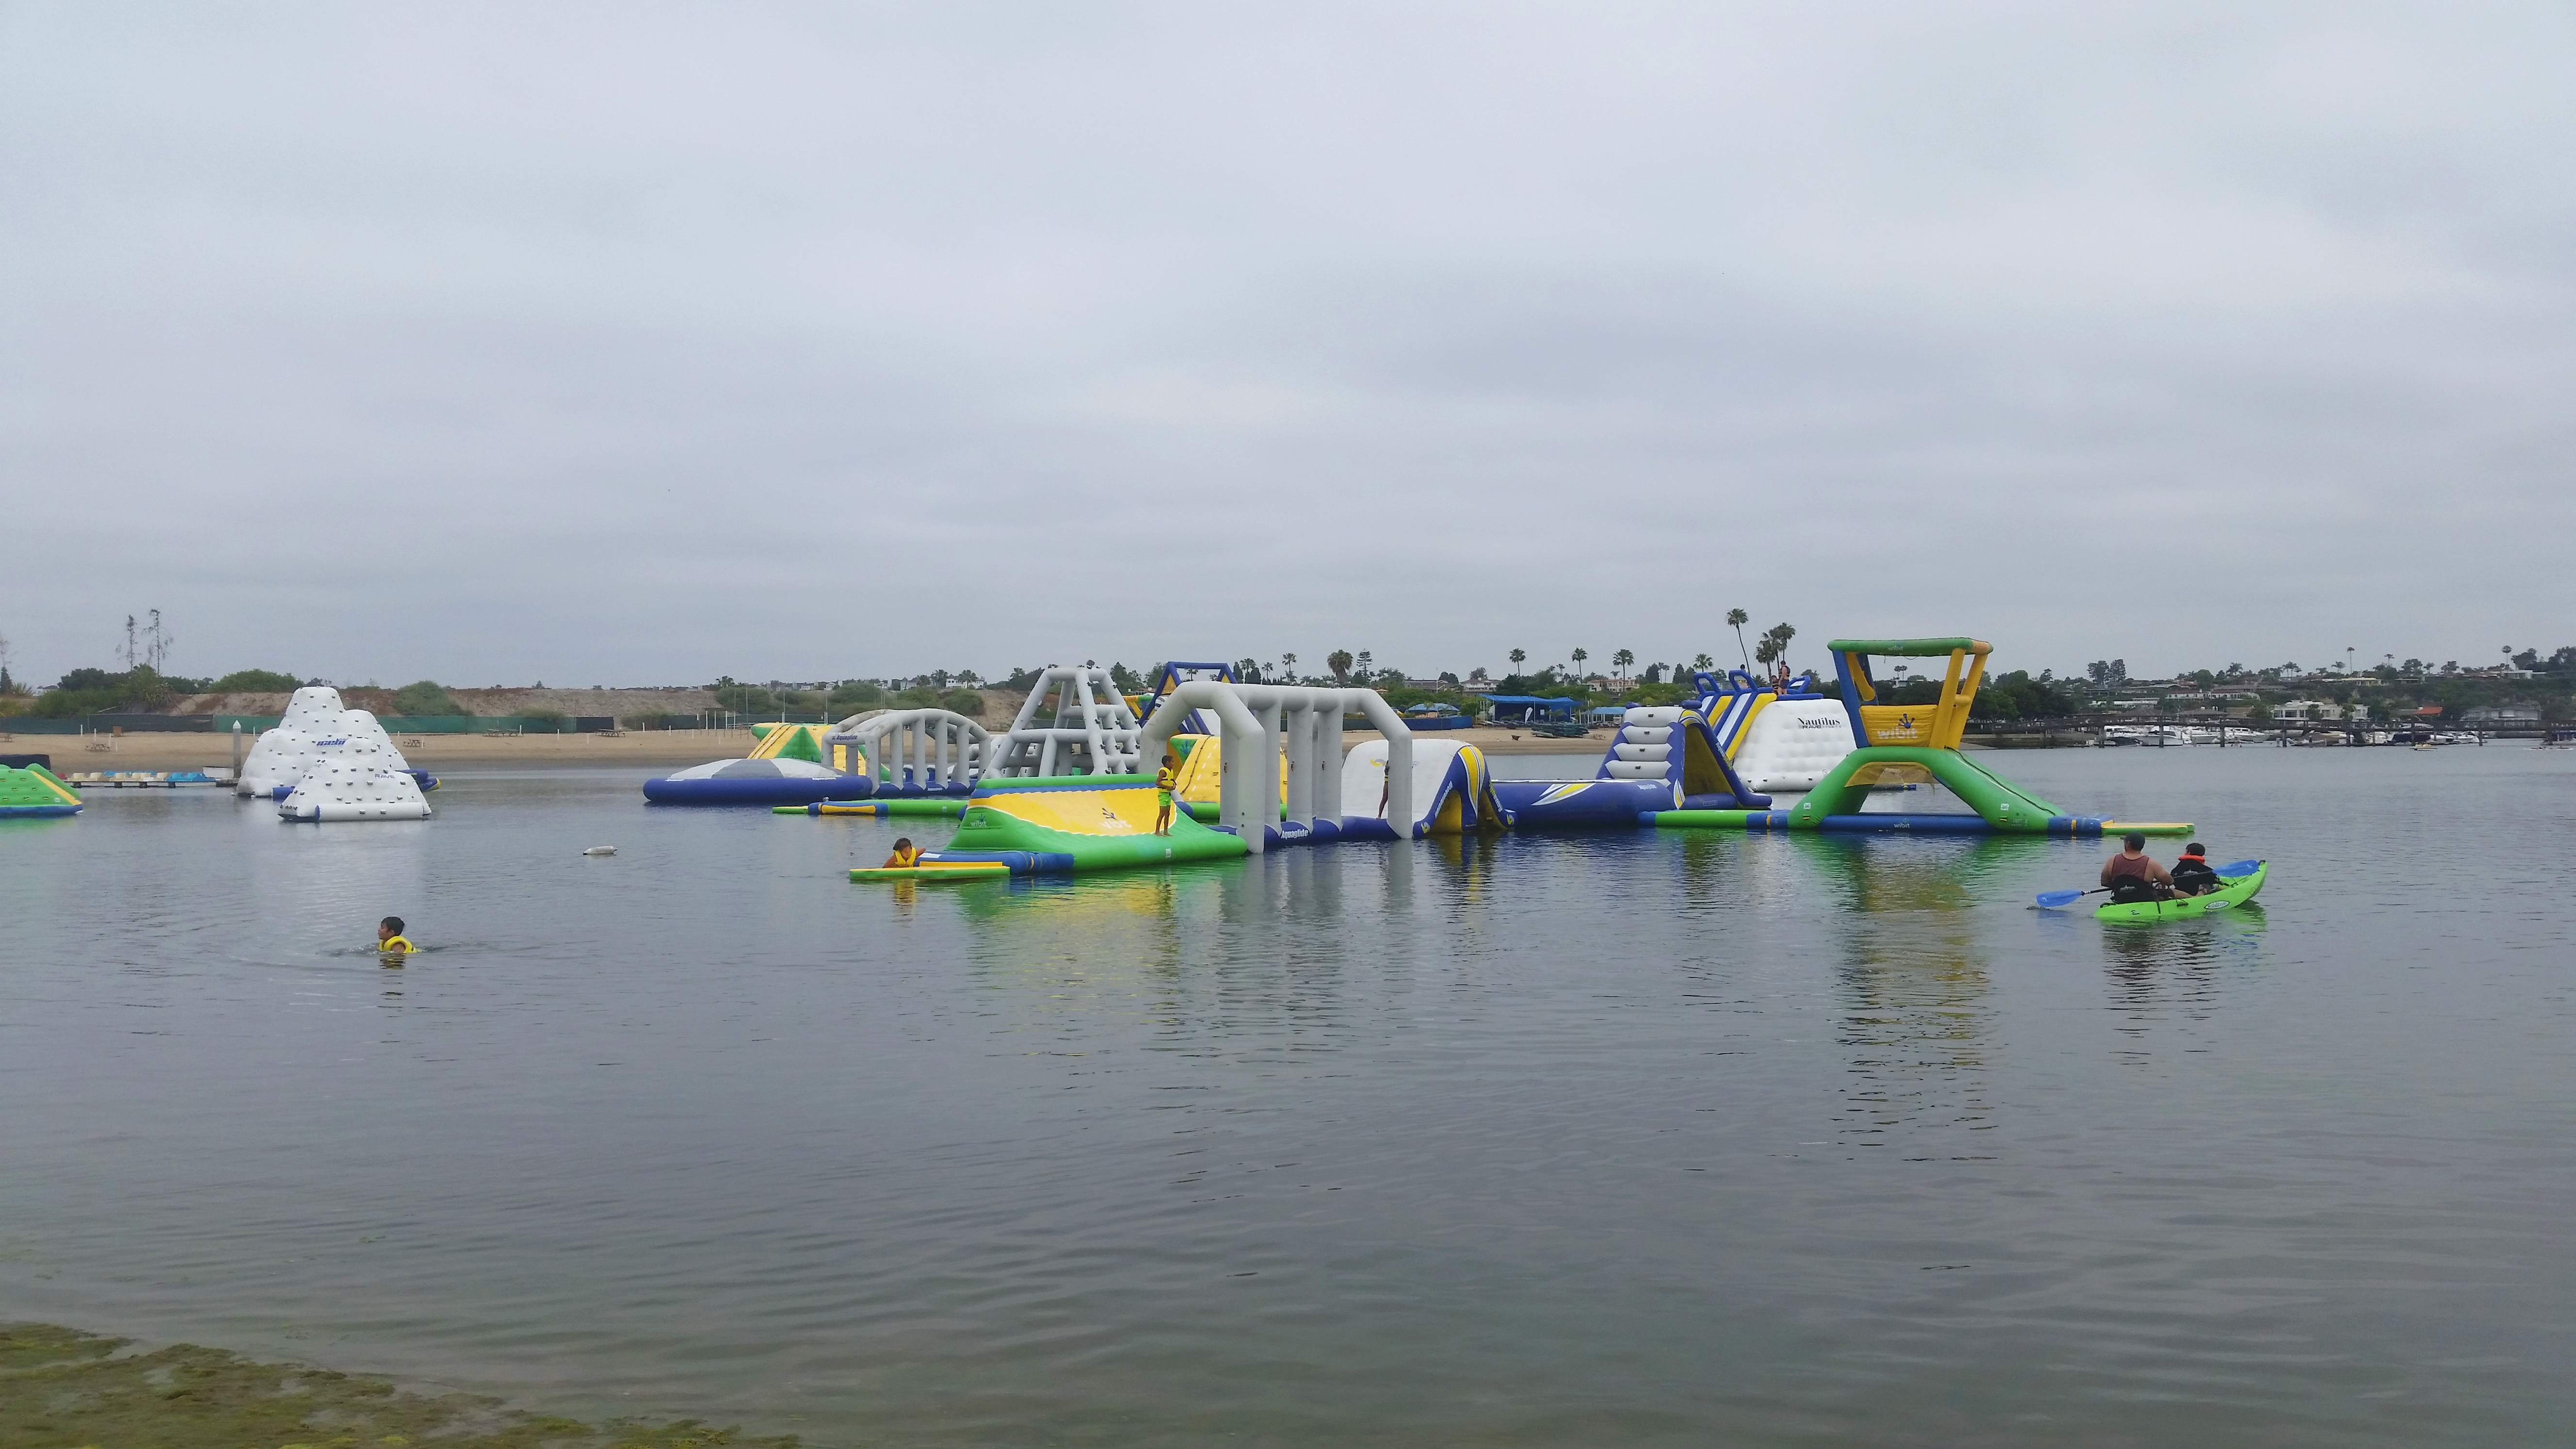 Their waterpark includes a bouncy obstacle course as well as kayak and stand-up paddleboard rentals